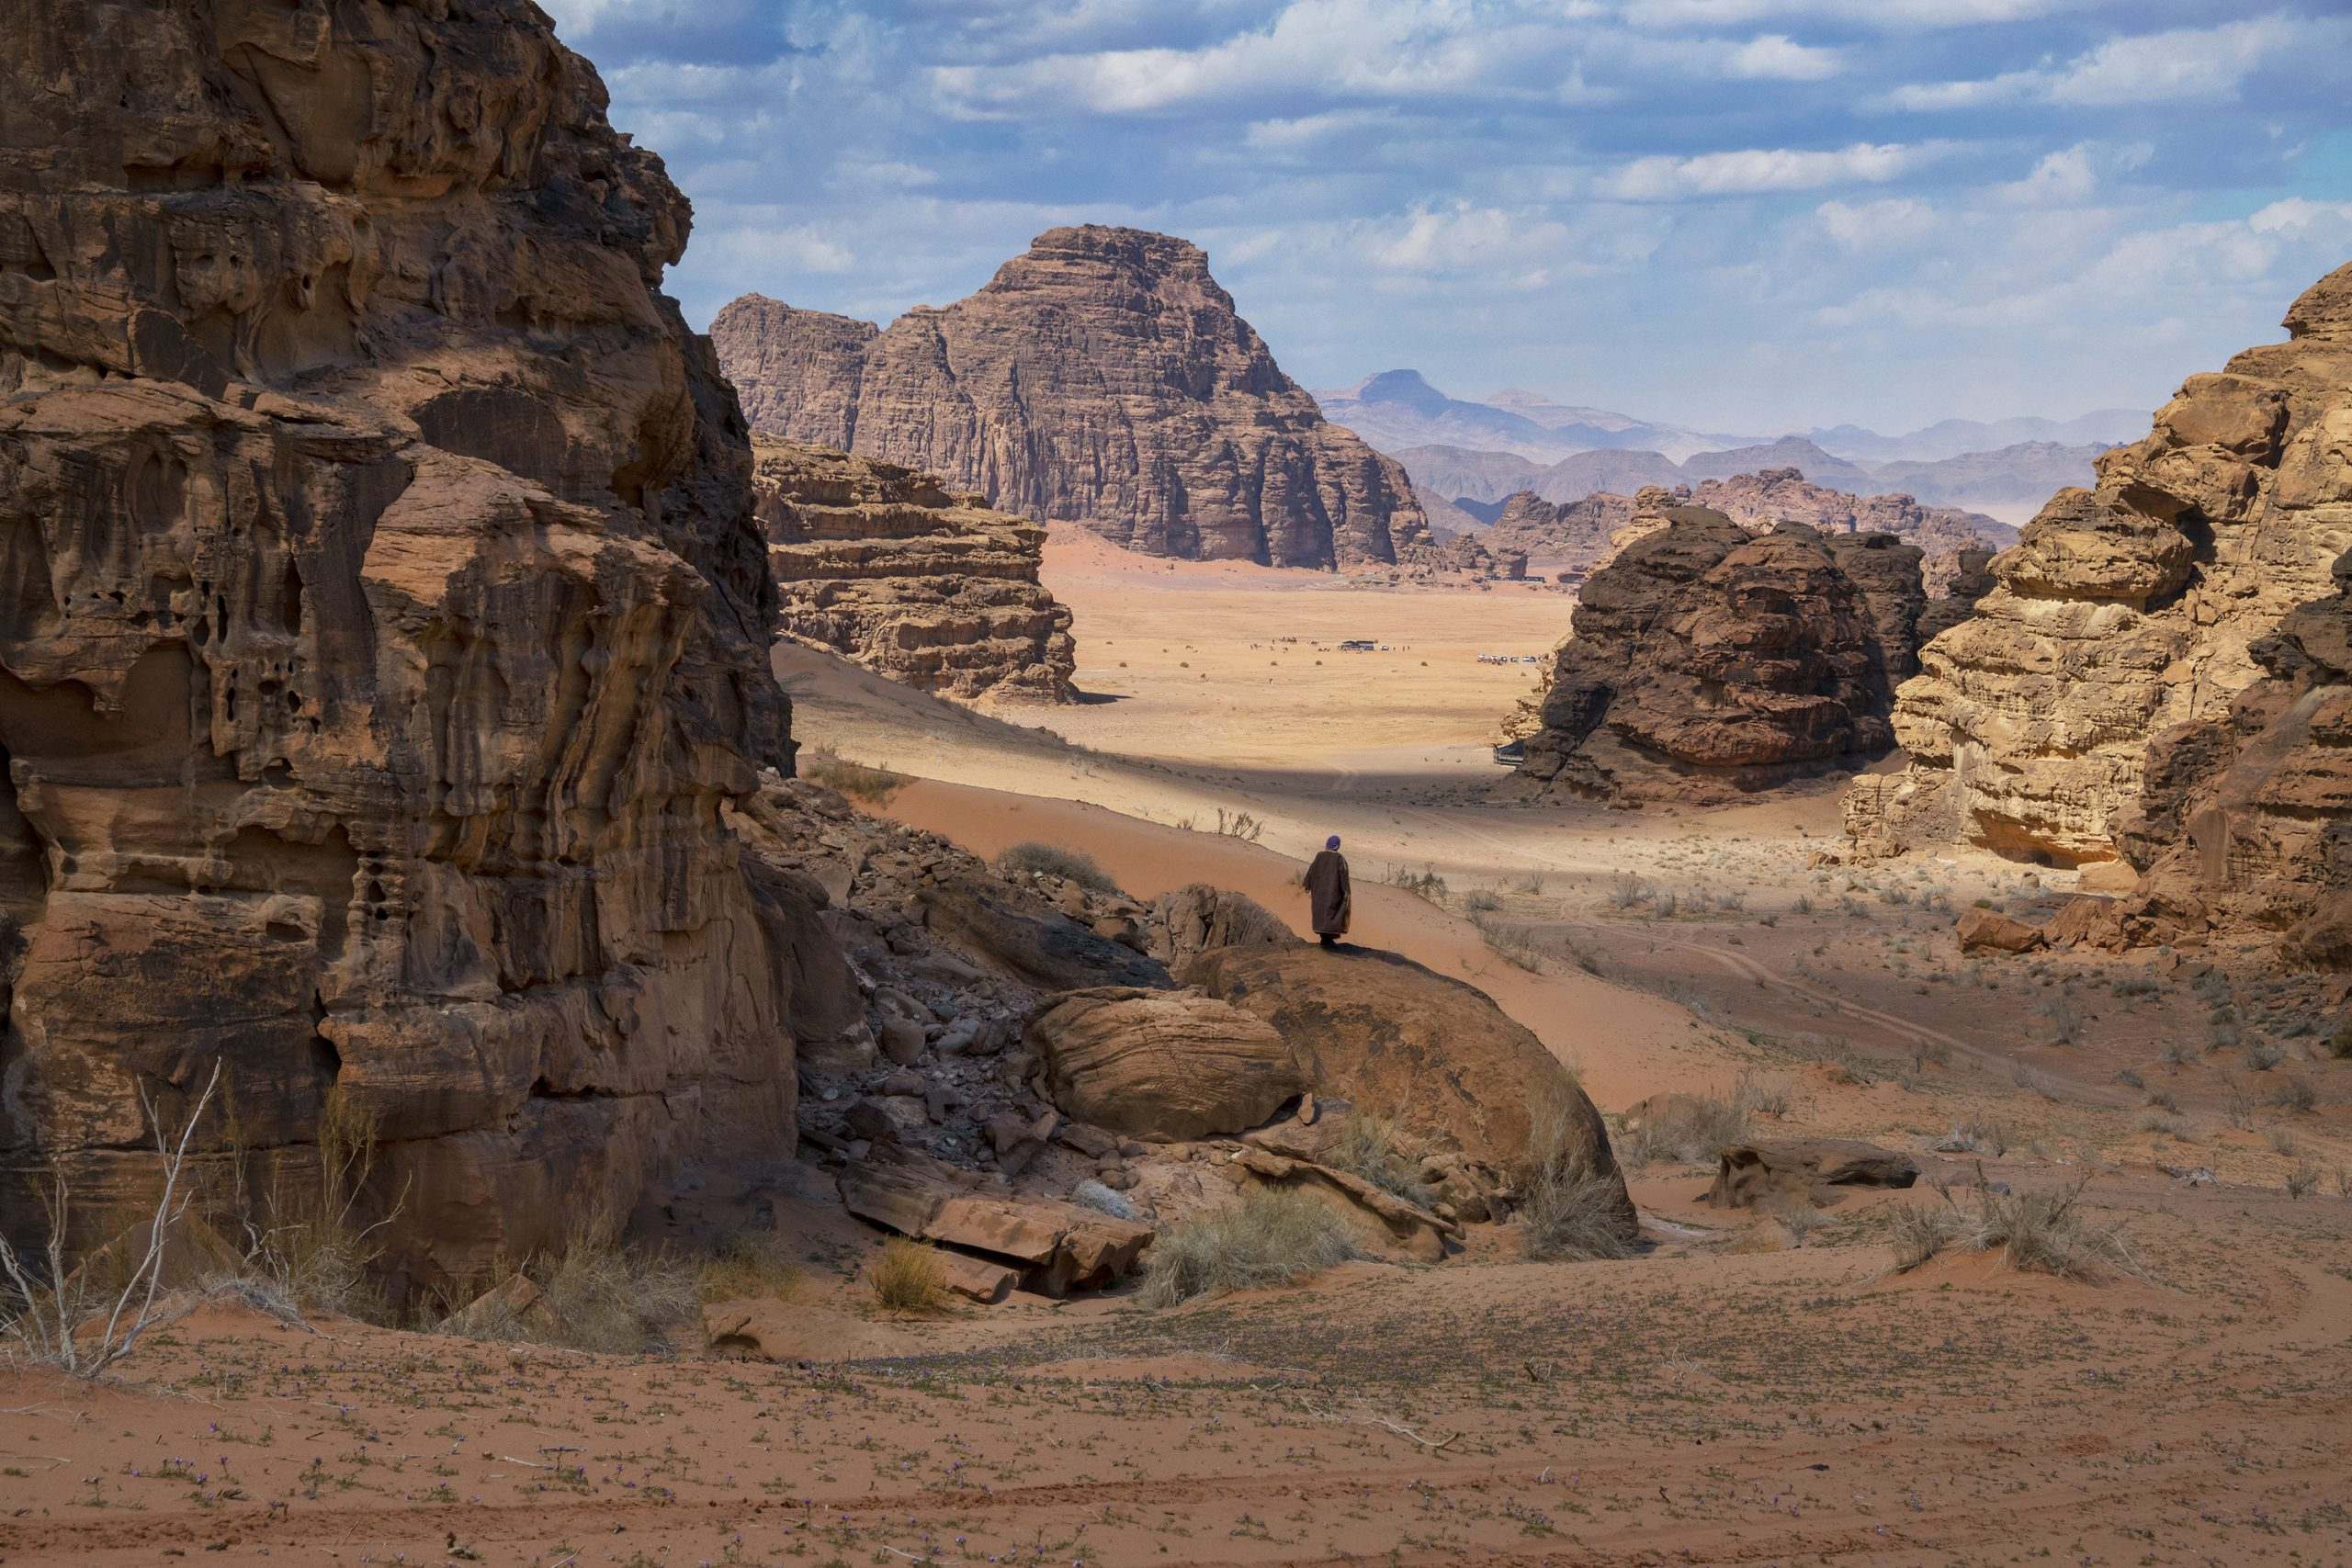 Color photograph by Steve McCurry, Wadi Rum, Jordan, mountains, rock formations